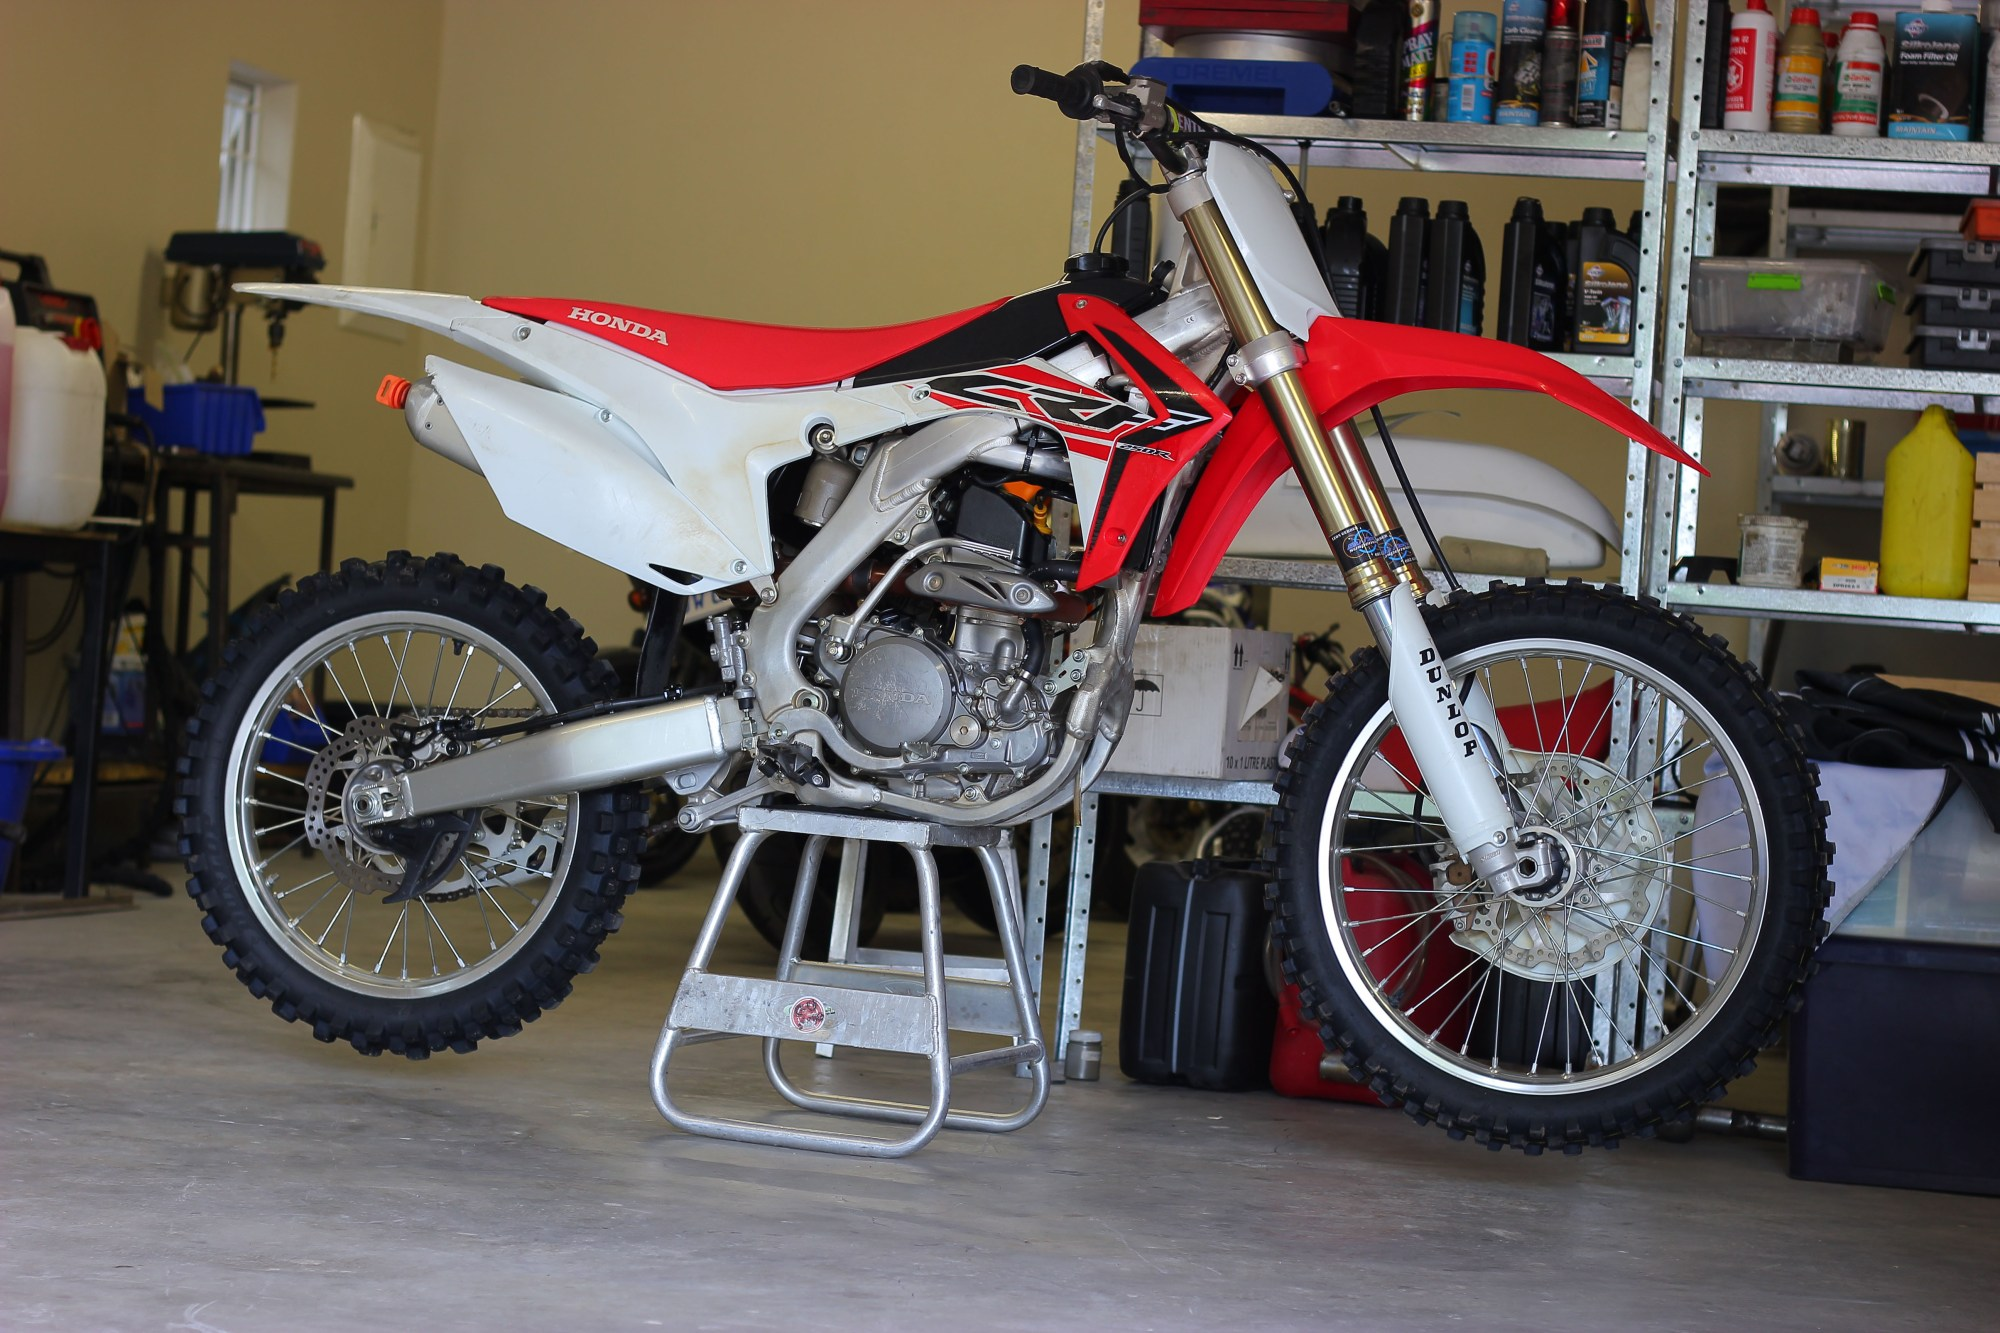 hight resolution of  from the frame up would ve been too costly so justin sold the motor out of his 2014 crf250r and began fabrication to fit the cr250 engine